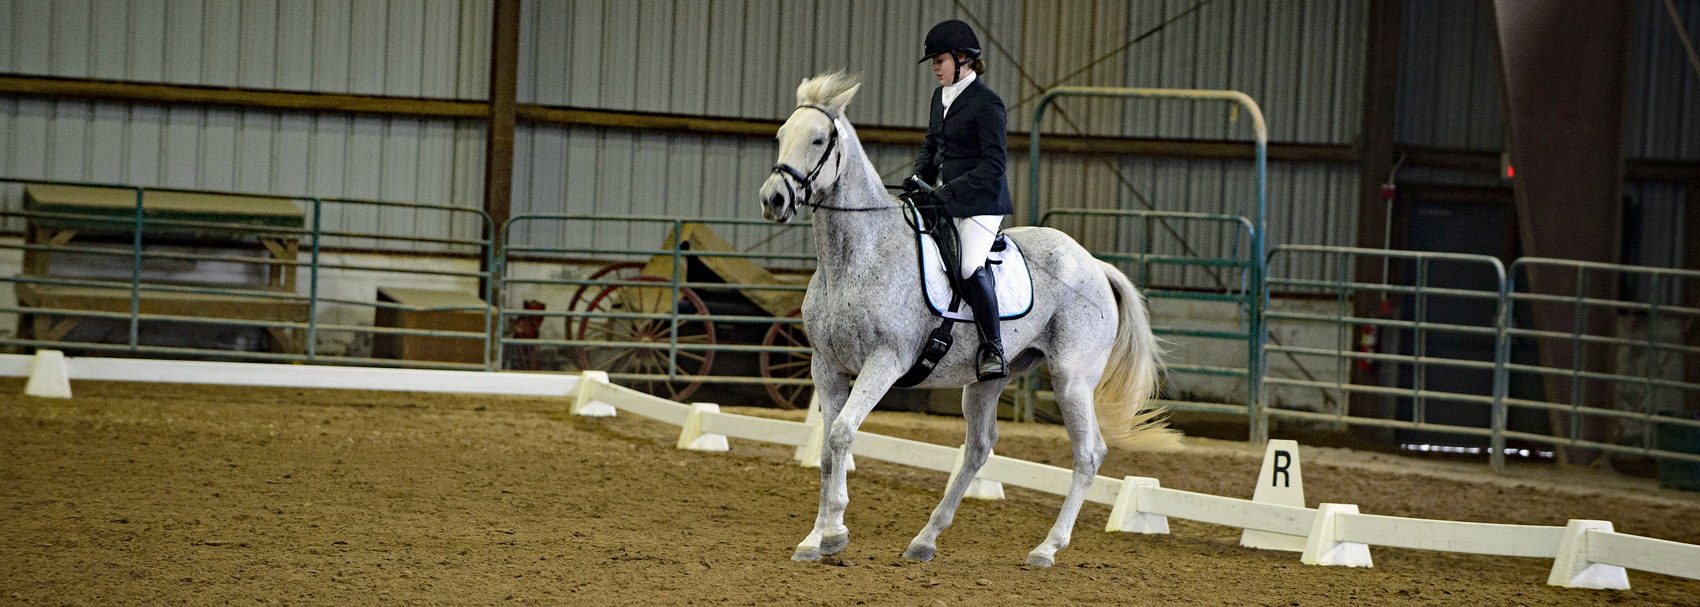 Rider pulls back on reins during dressage performance